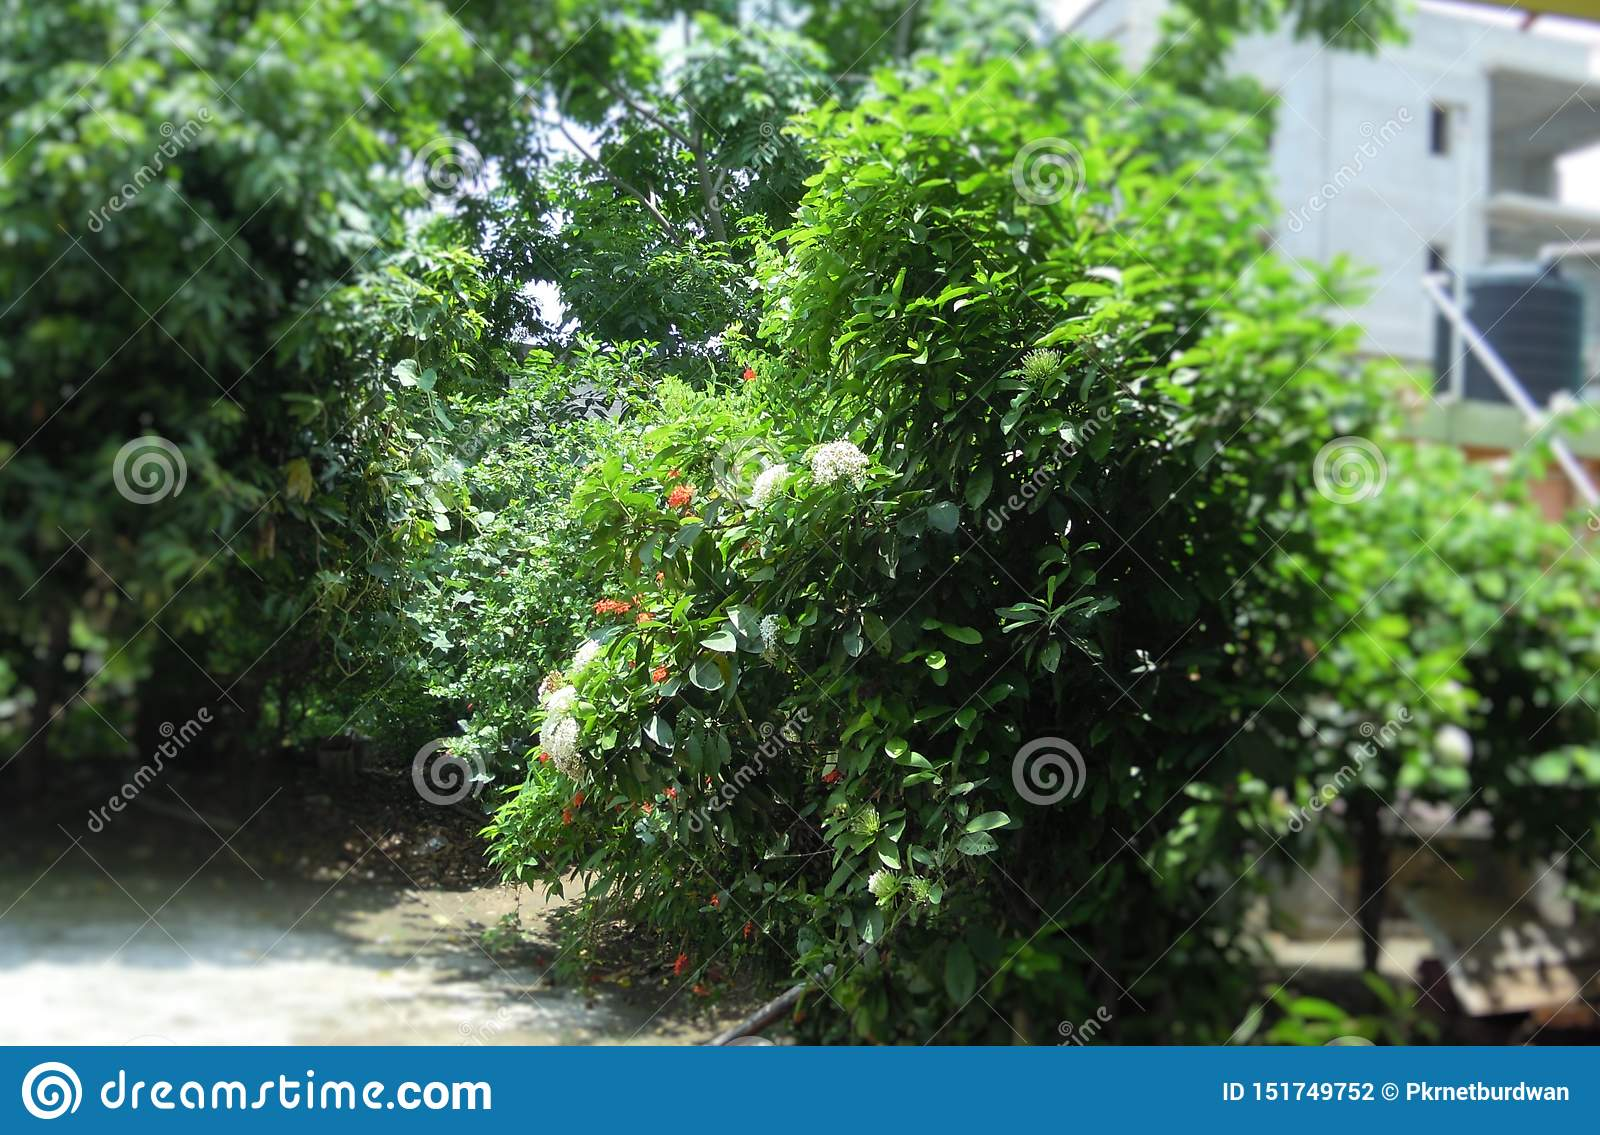 The Garden With Various Types Of Trees And Also Flowers Stock